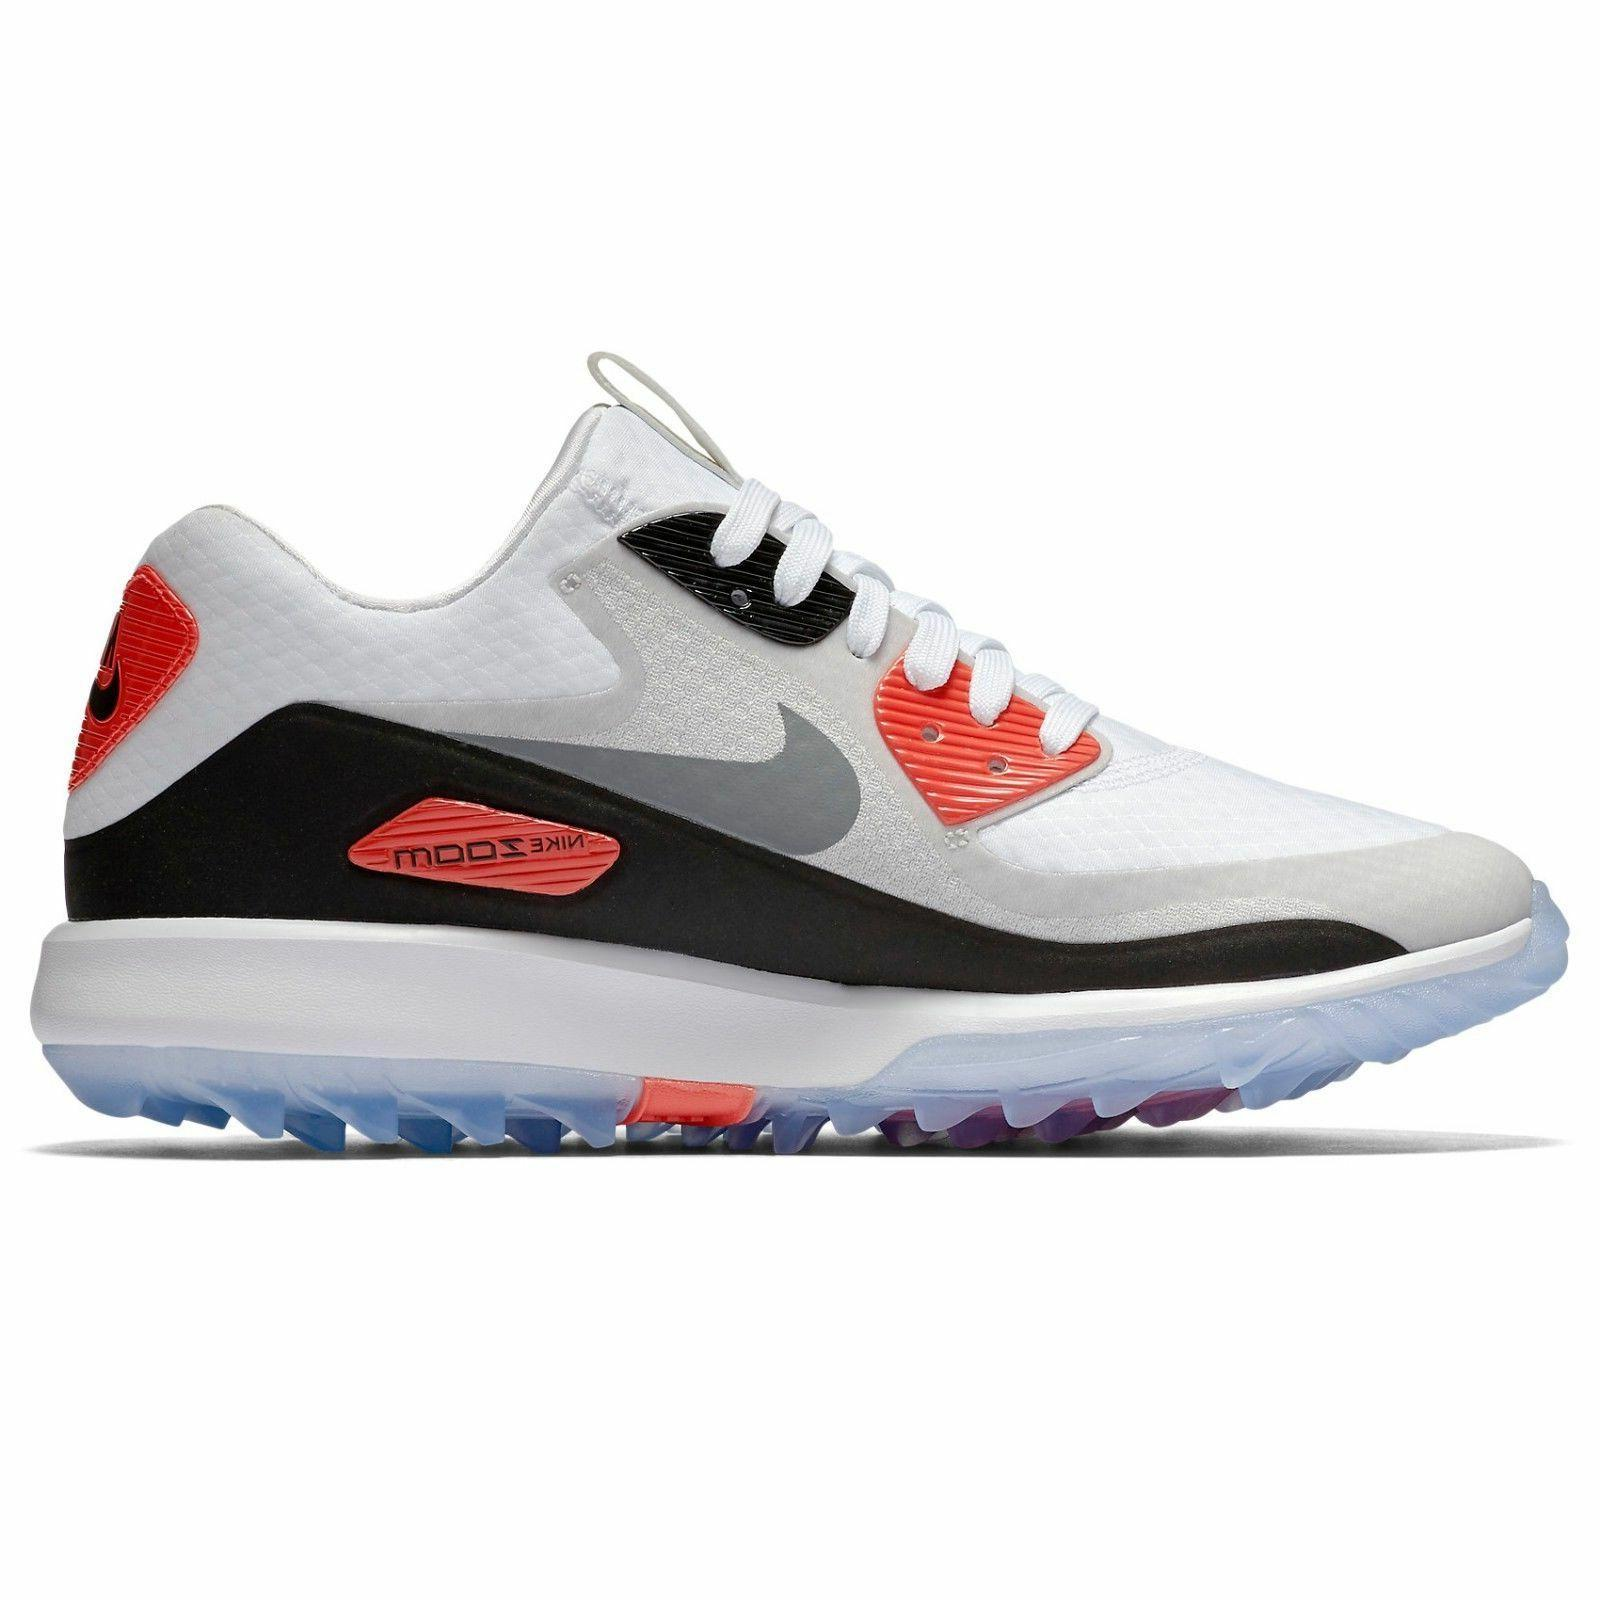 NIKE AIR IT GOLF SIZE 7.5 INFRARED 100